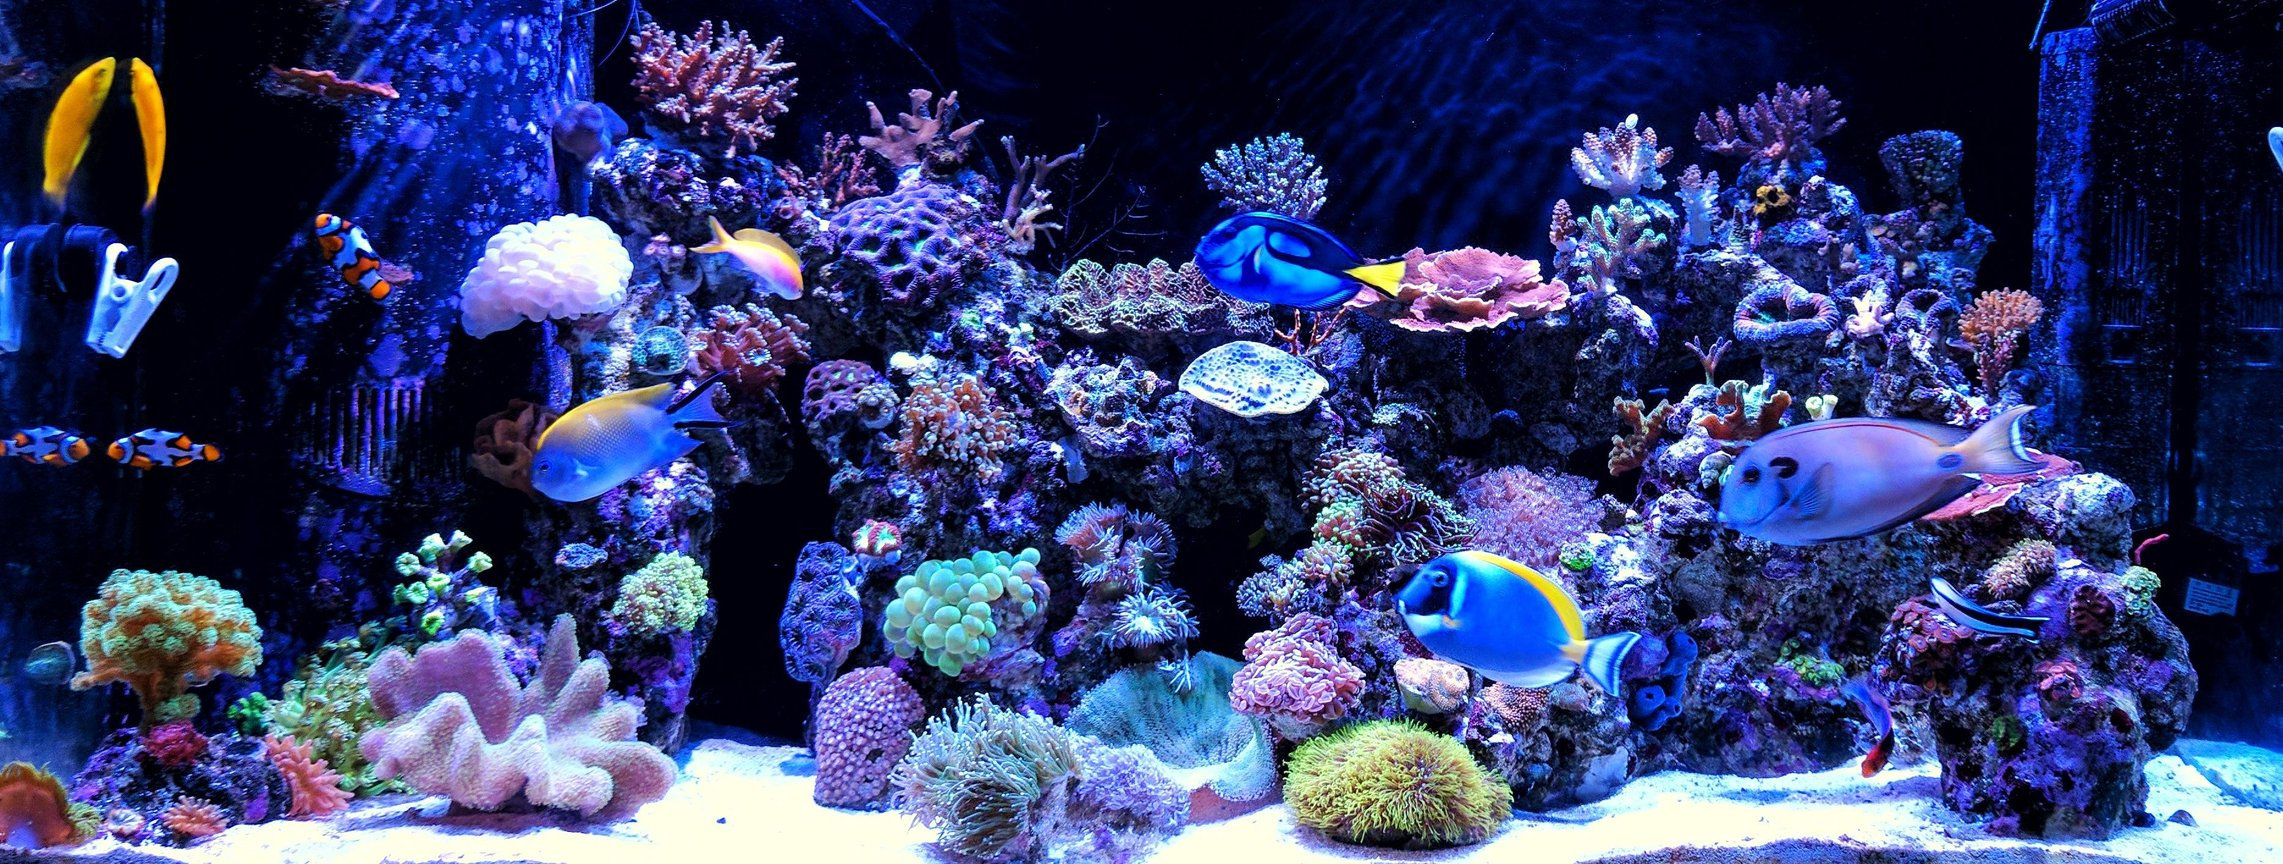 90 gallons reef tank (mostly live coral and fish) - My two years old reef tank.